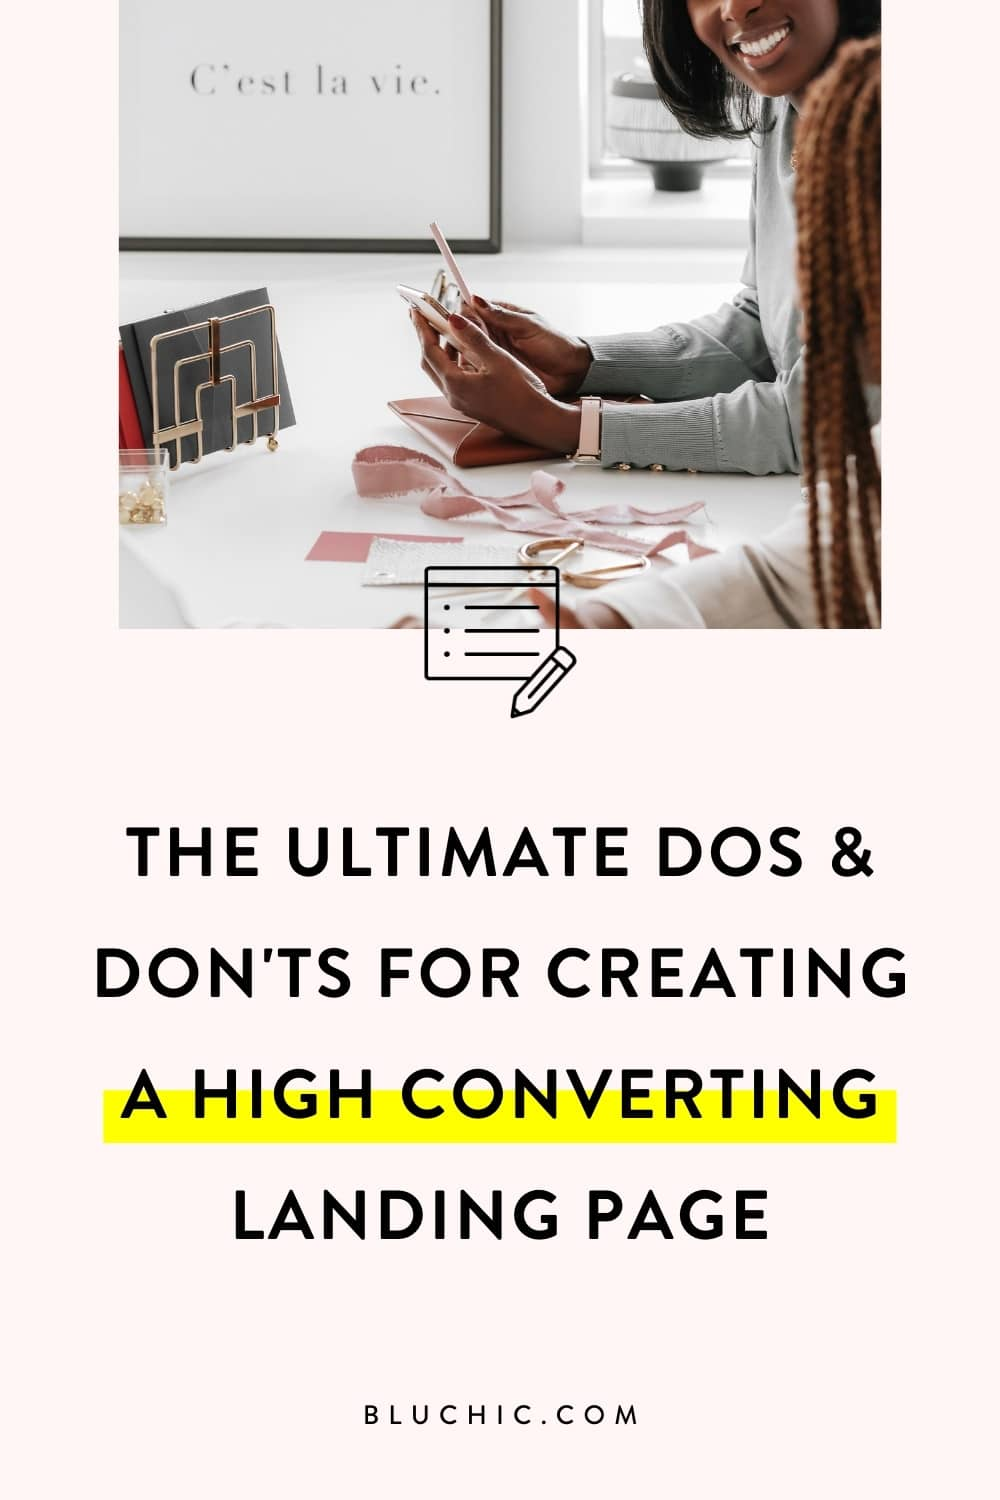 The Ultimate Dos & Don'ts Checklist For Creating a High Converting Landing Page | Have no clue how to create a high converting landing page? Check out this blog post and checklist from Bluchic sharing all the do's and don'ts of a high converting landing page!